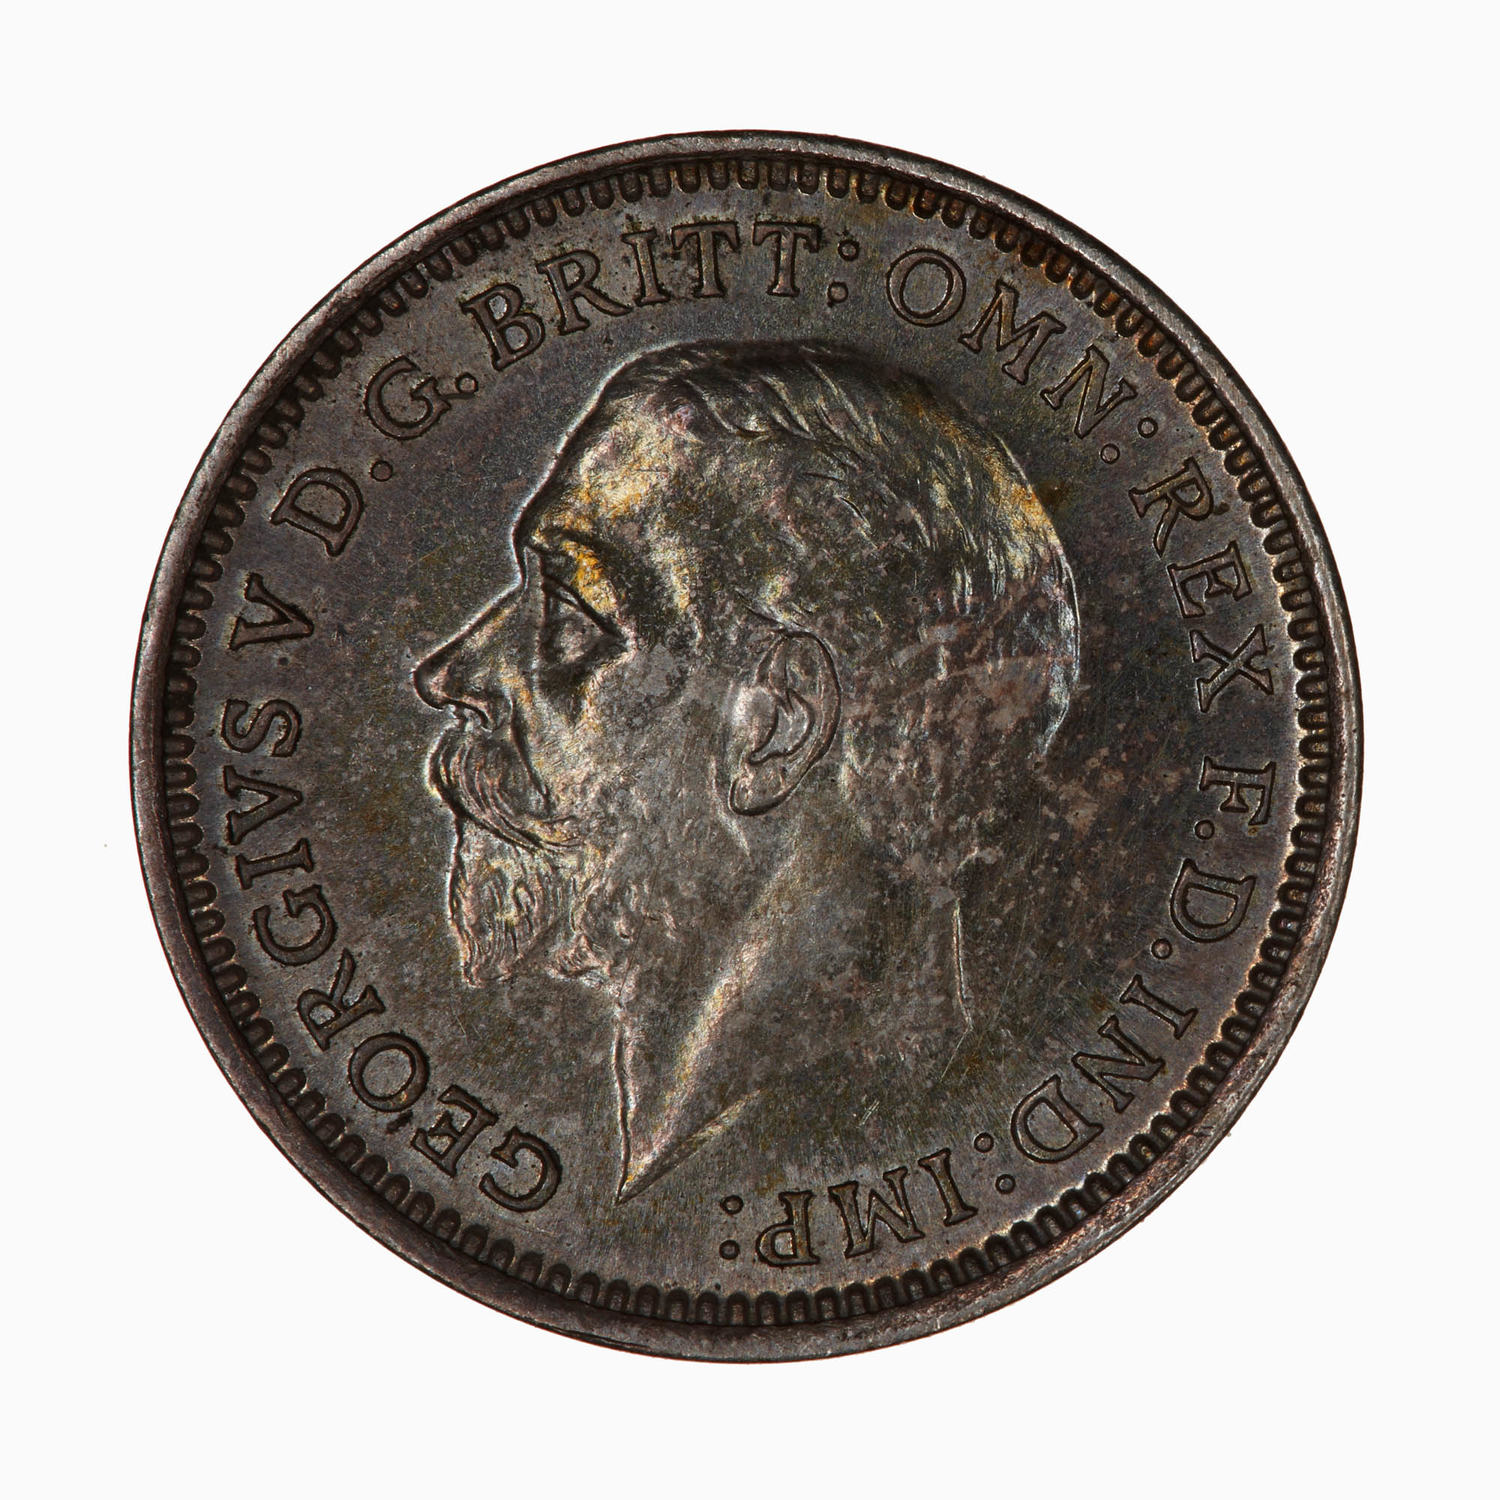 Maundy Threepence (Debased silver): Photo Coin - Threepence (Maundy), George V, Great Britain, 1932